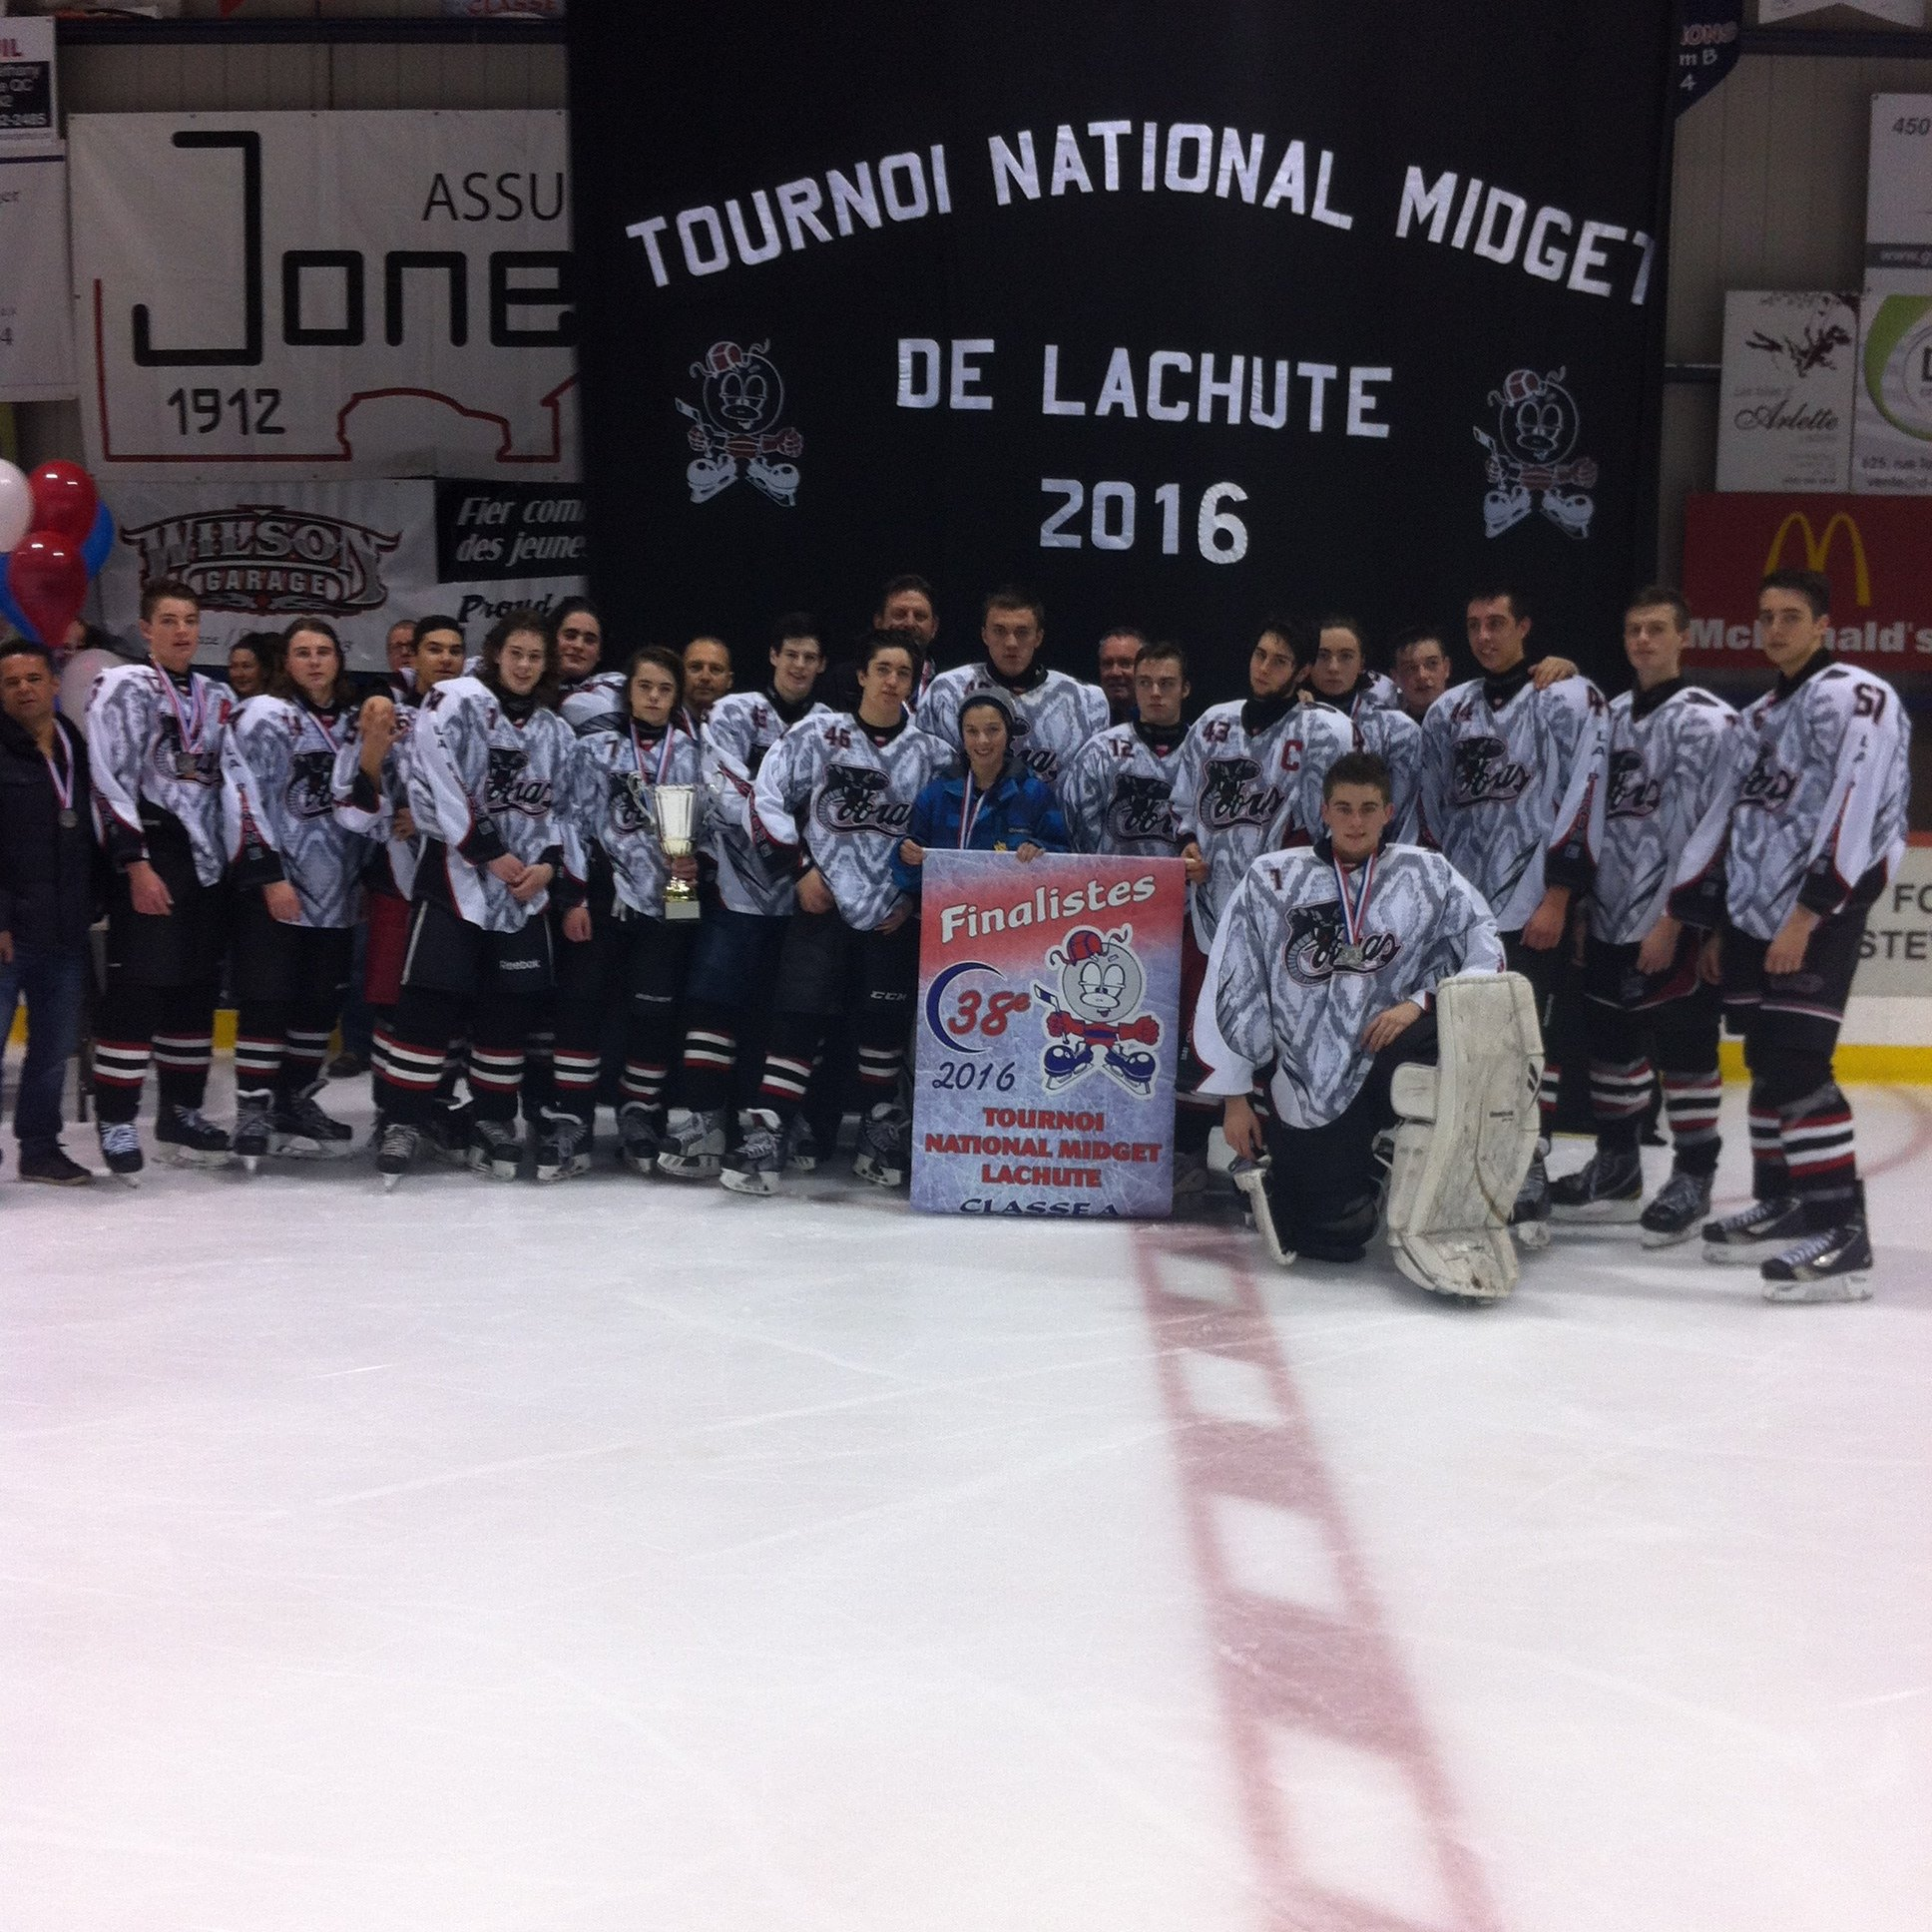 Tournoi midget de lachute would not